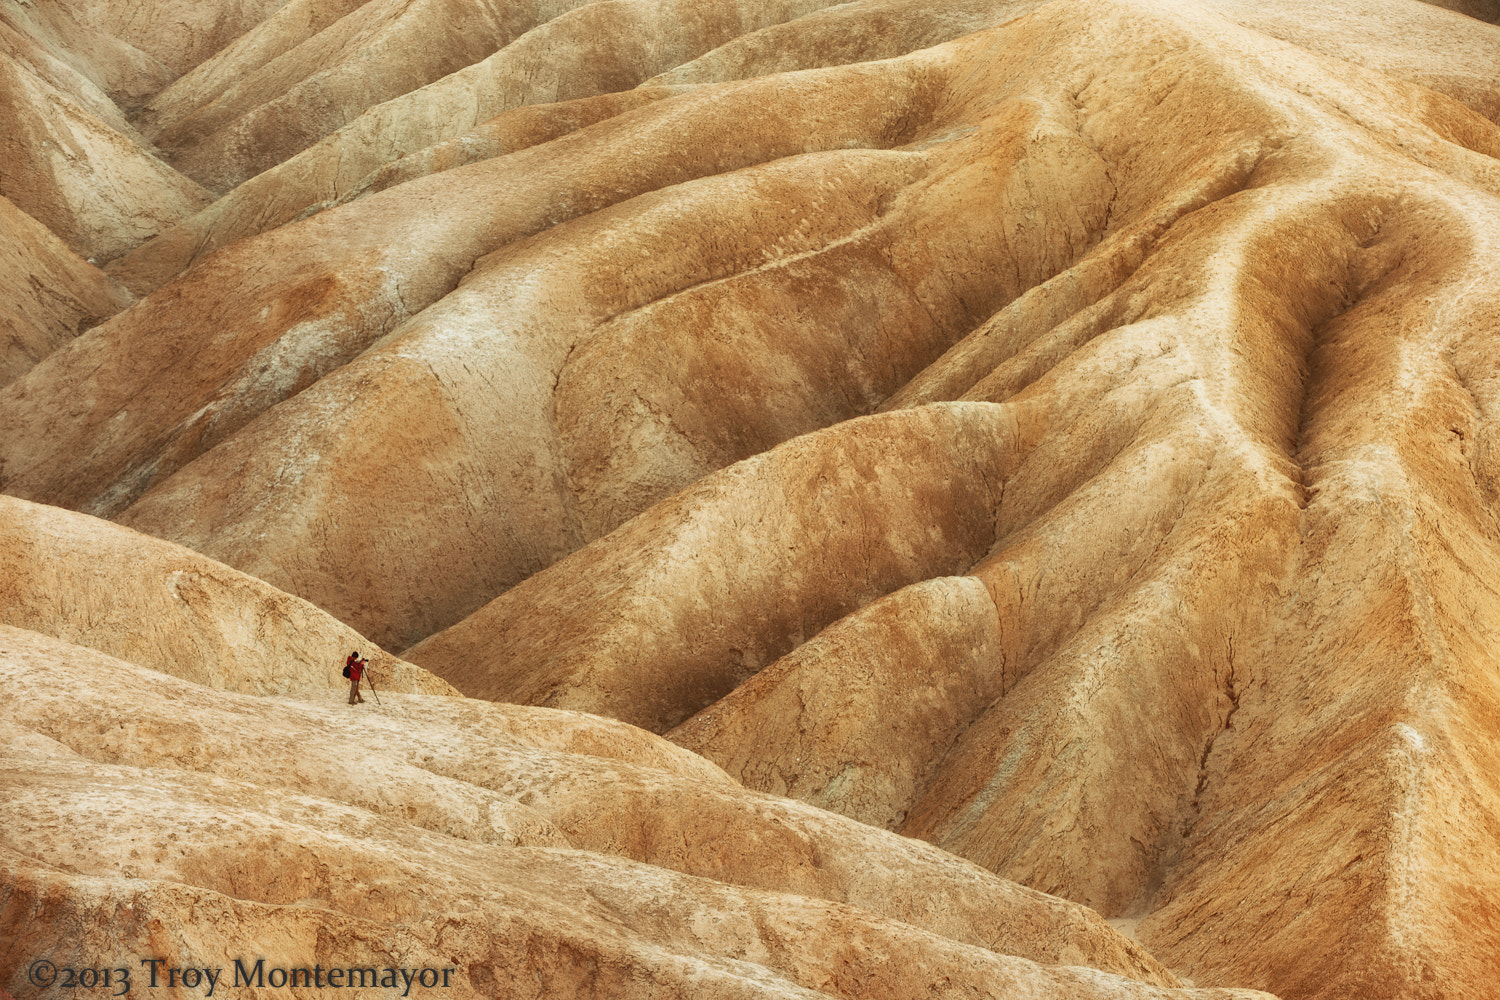 Photograph Photographer, Badlands, Death Valley, CA by Troy Montemayor on 500px